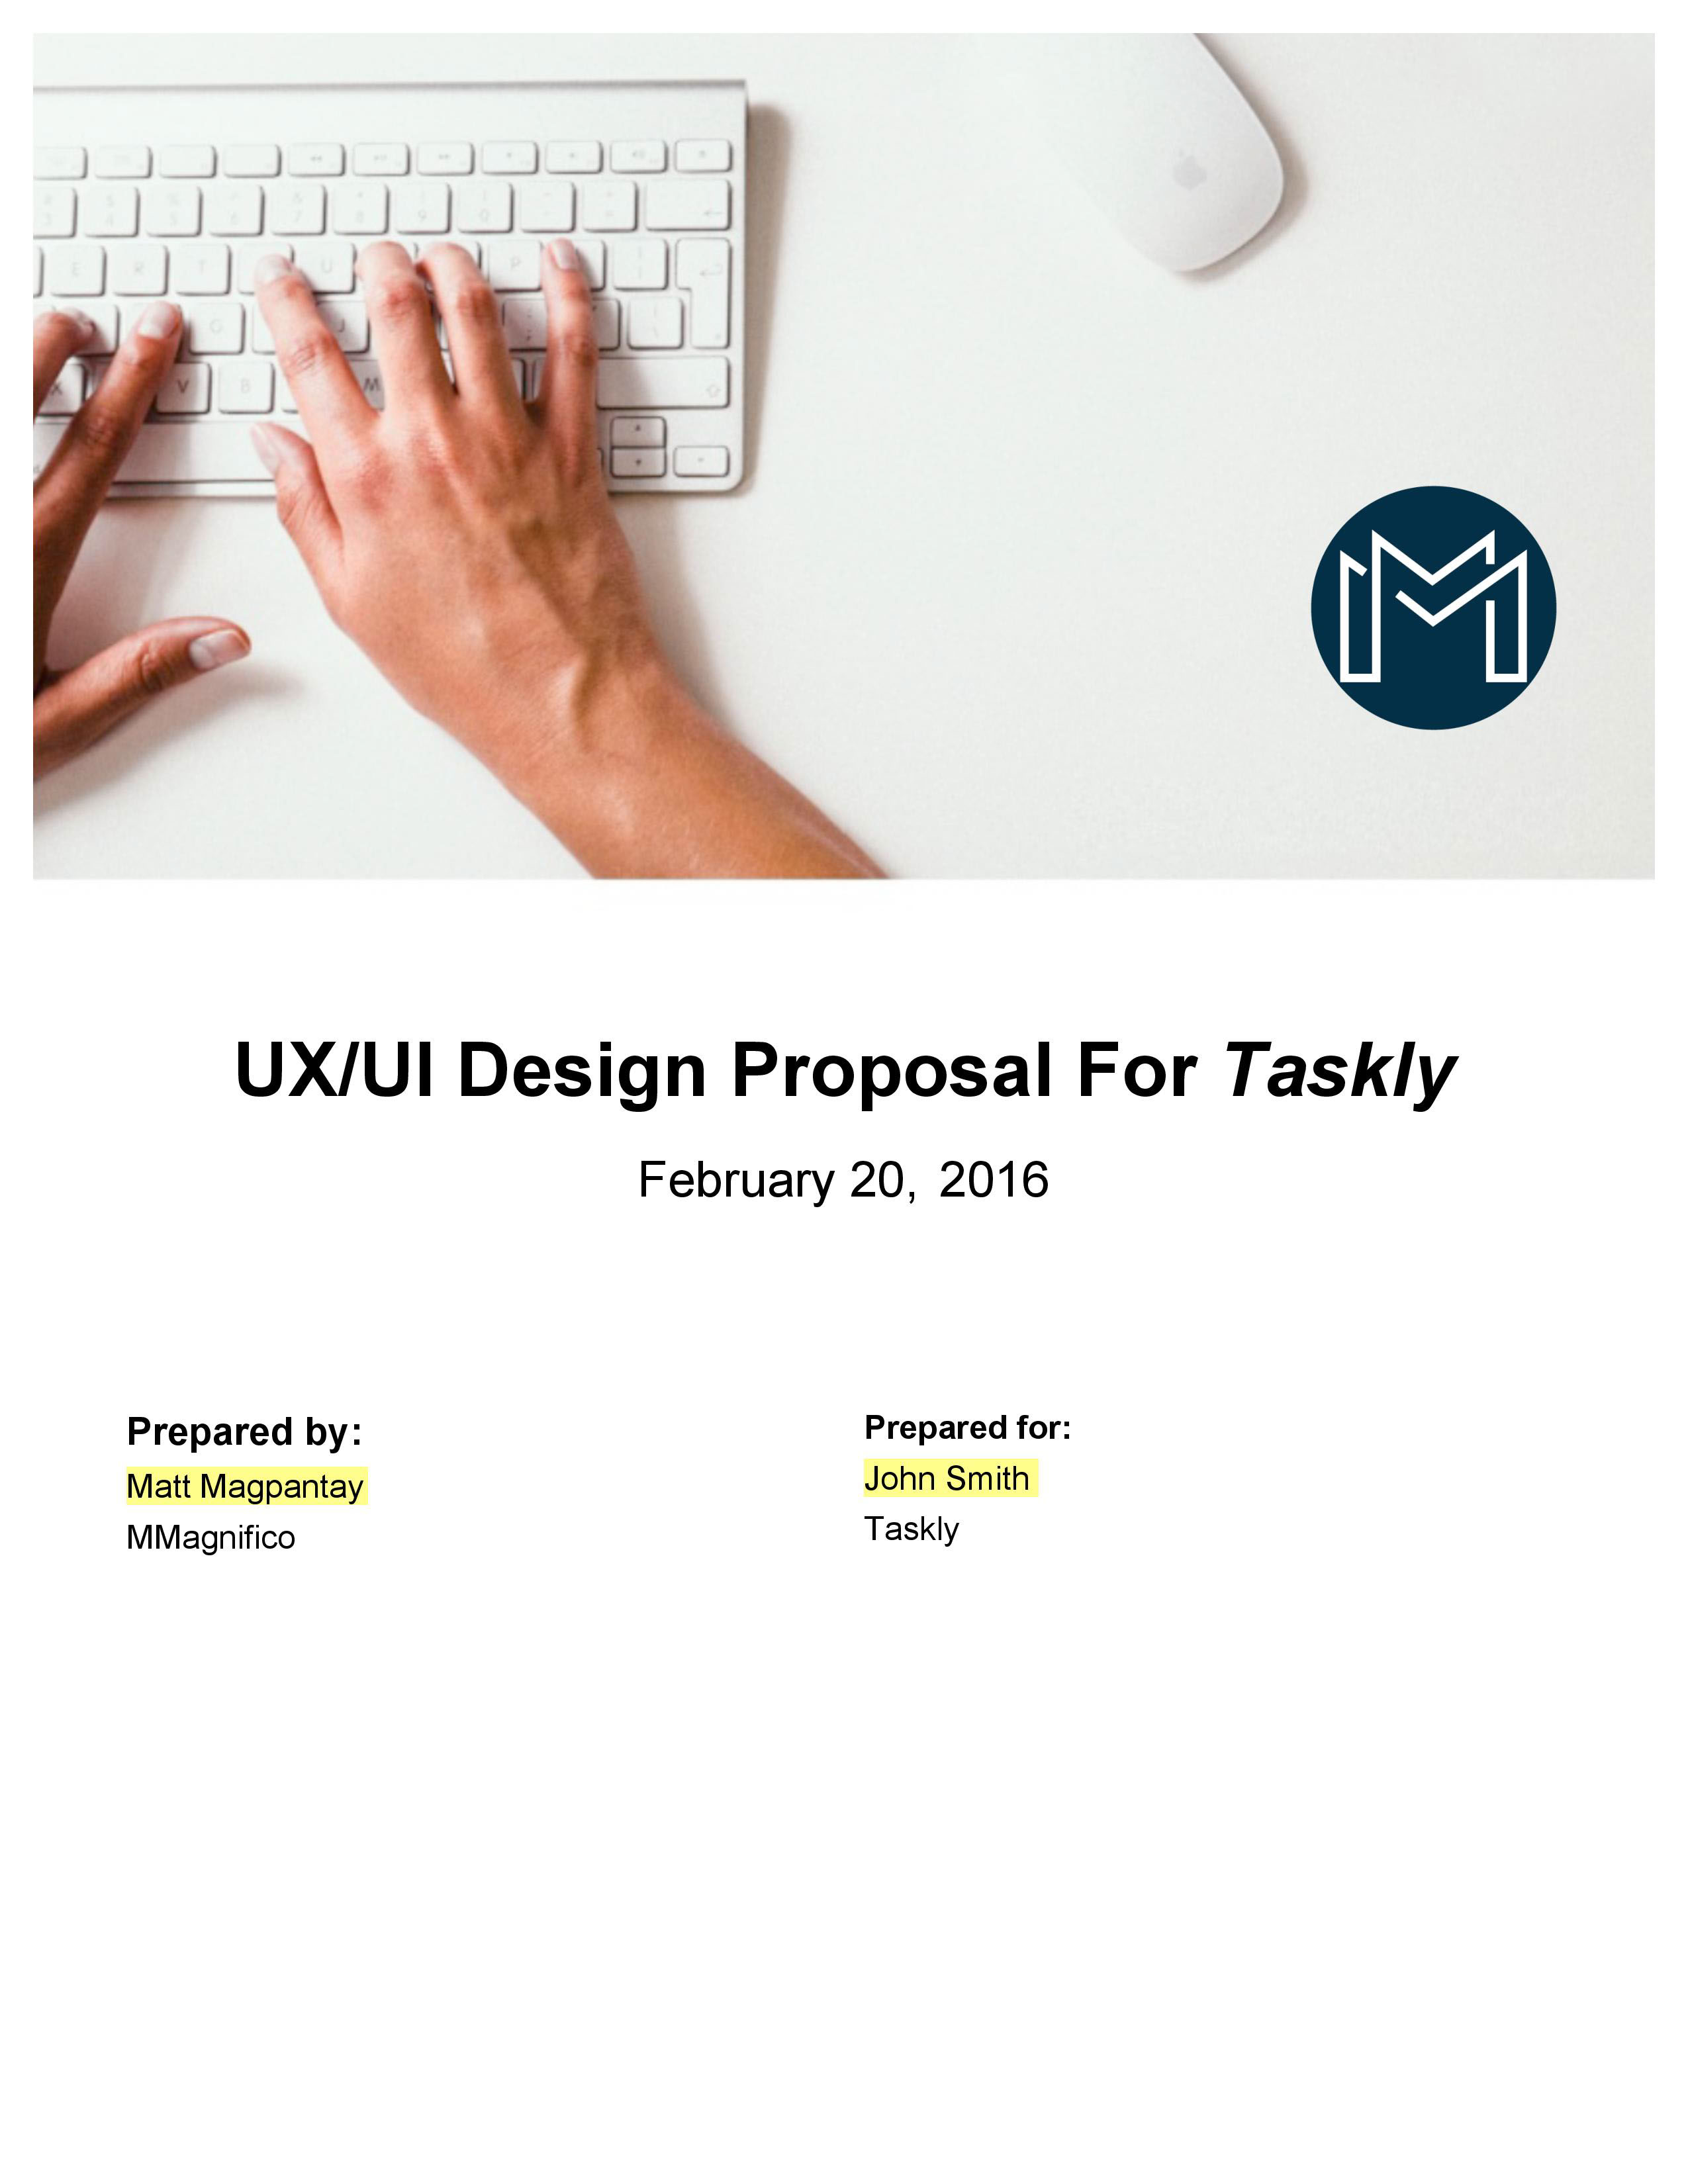 The Company Was In Search Of A User Experience Designer, And Contacted Me  In Order To To See If I Would Be Interested In Designing Their Application.